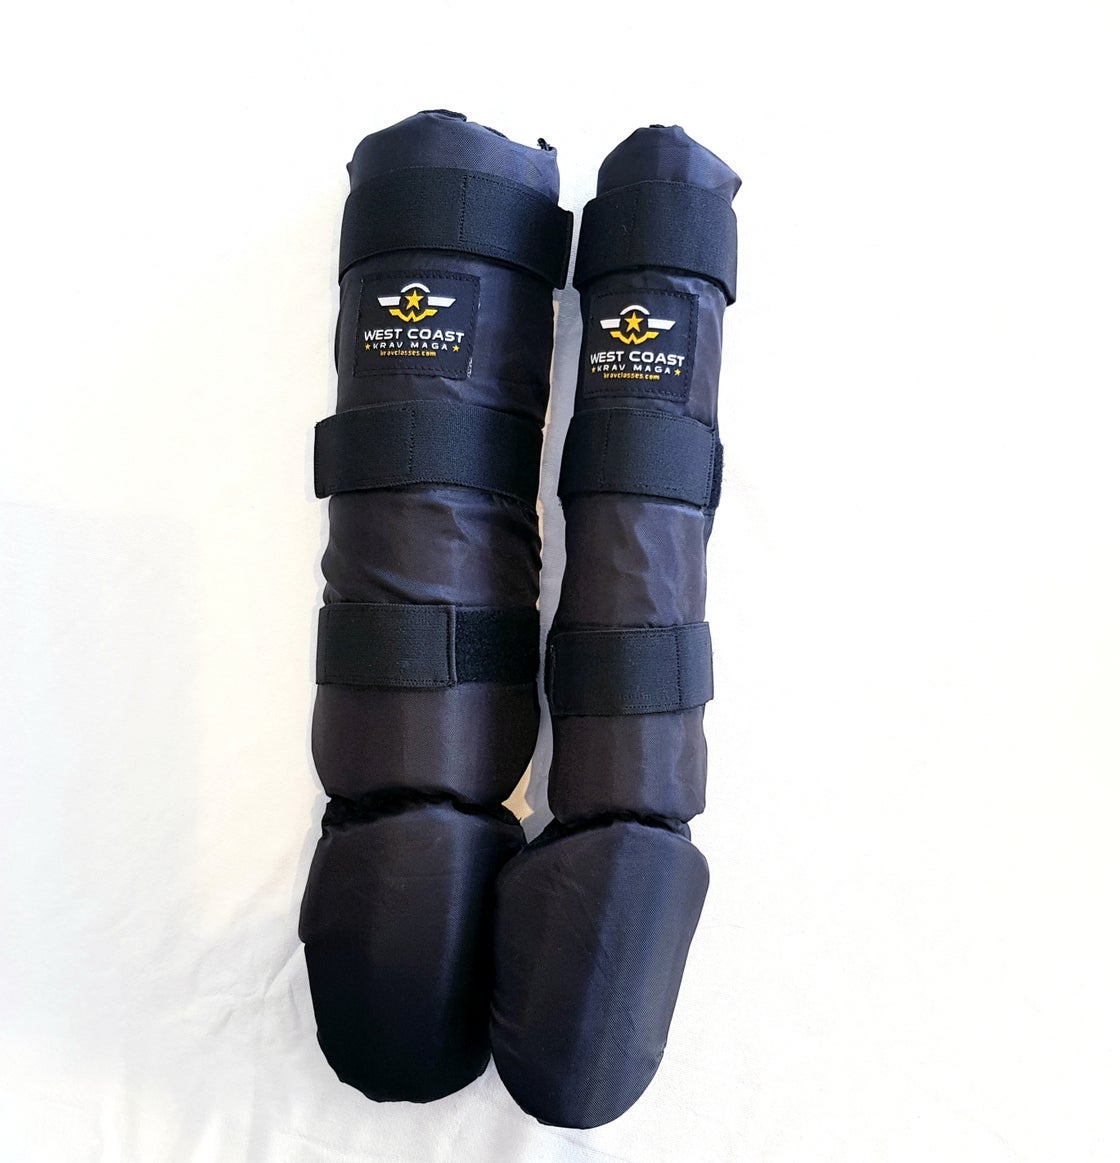 Image of Adult + Teens Shin Guards and instep